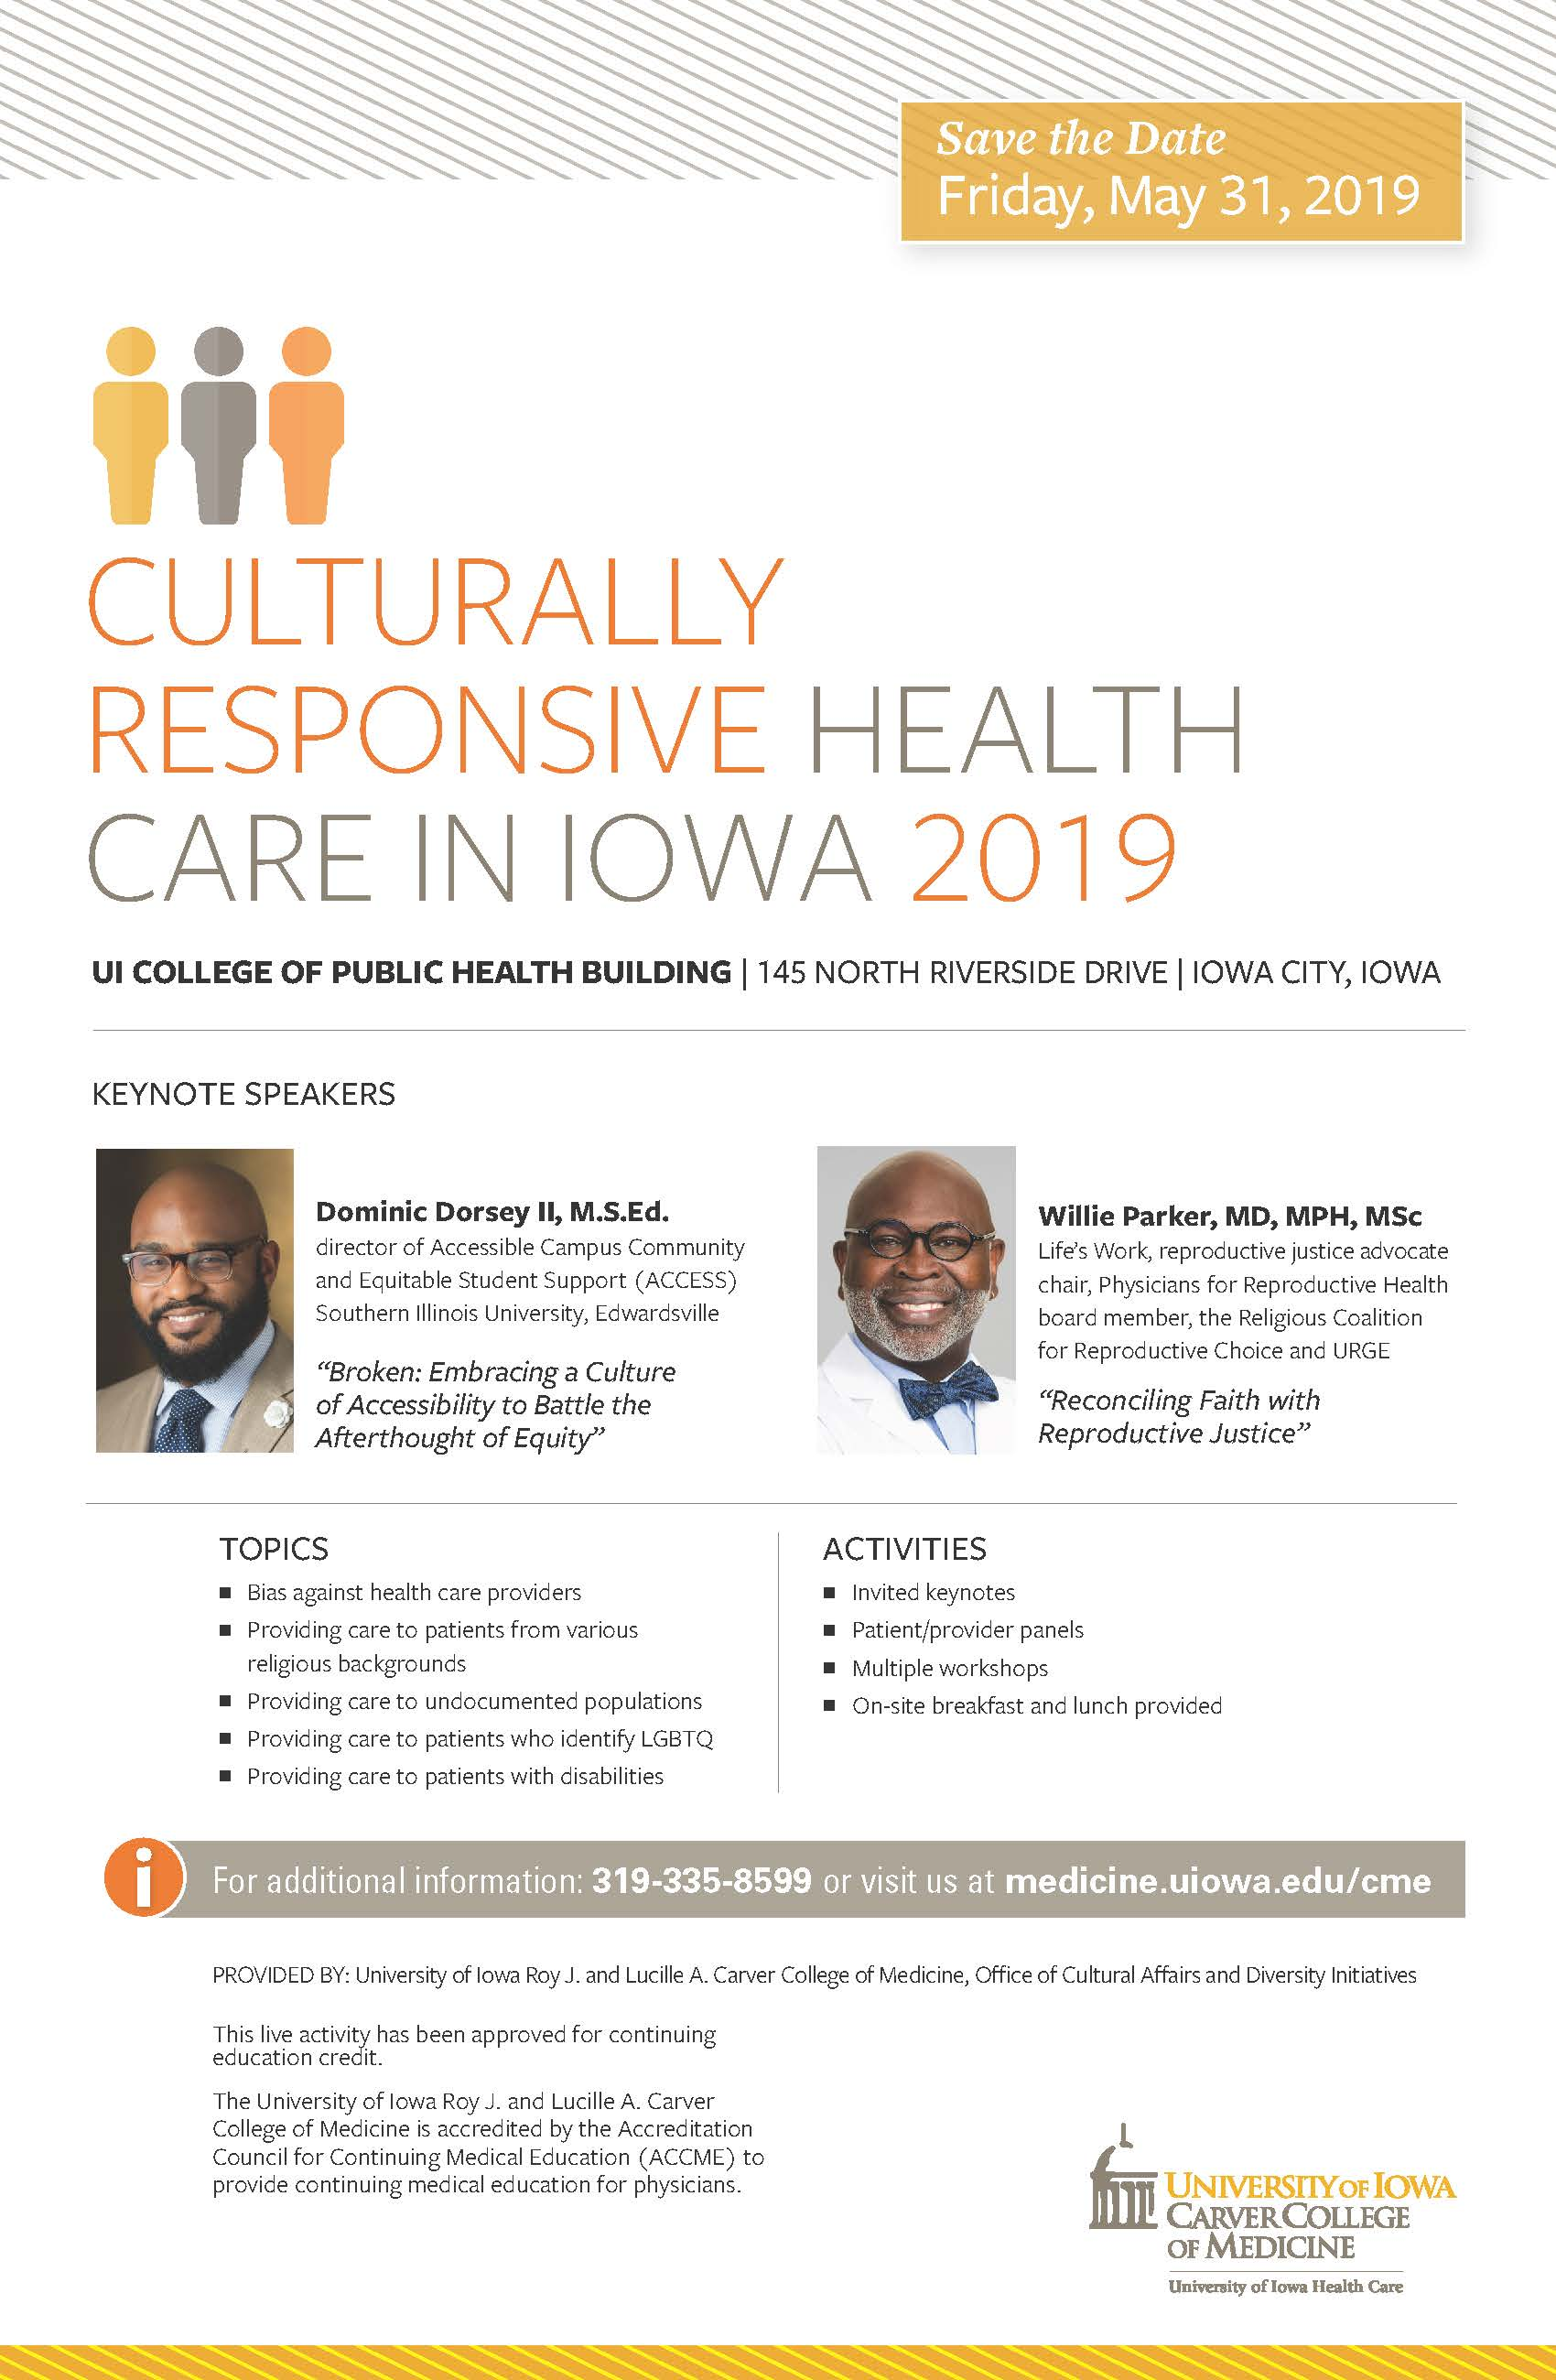 Culturally Responsive Health Care in Iowa 2019 Banner